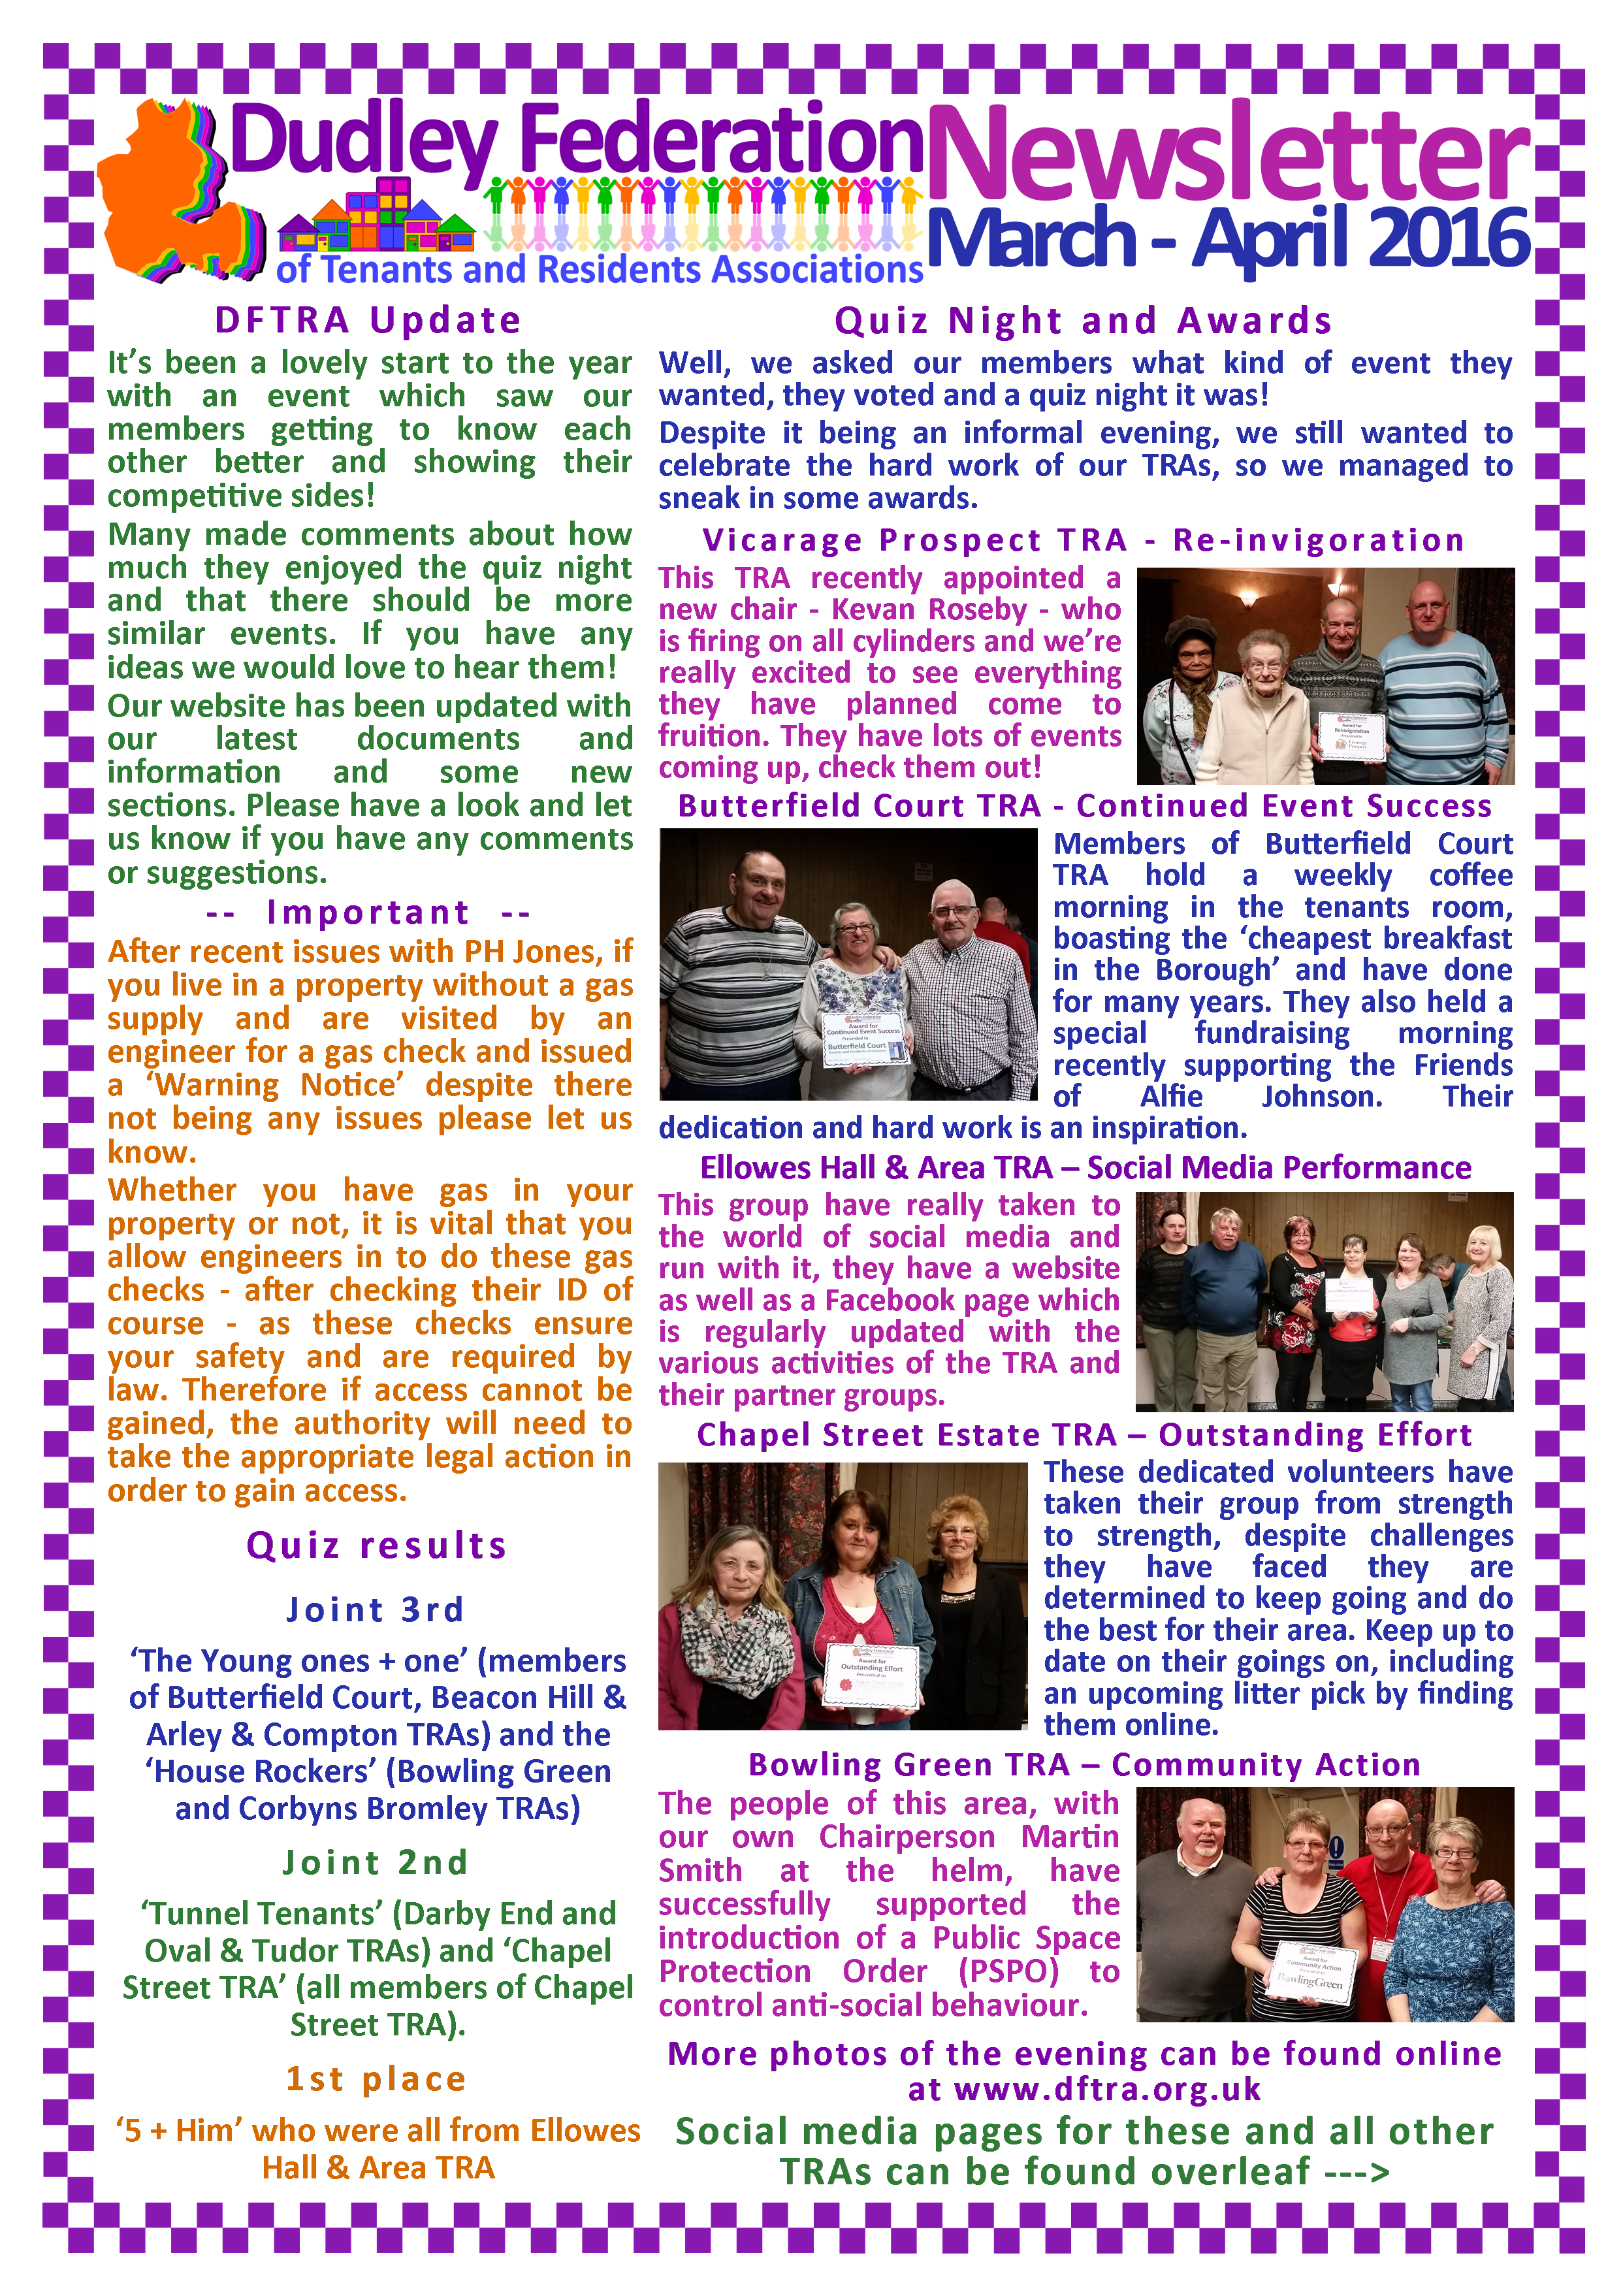 DFTRA news March - April 2016 p1